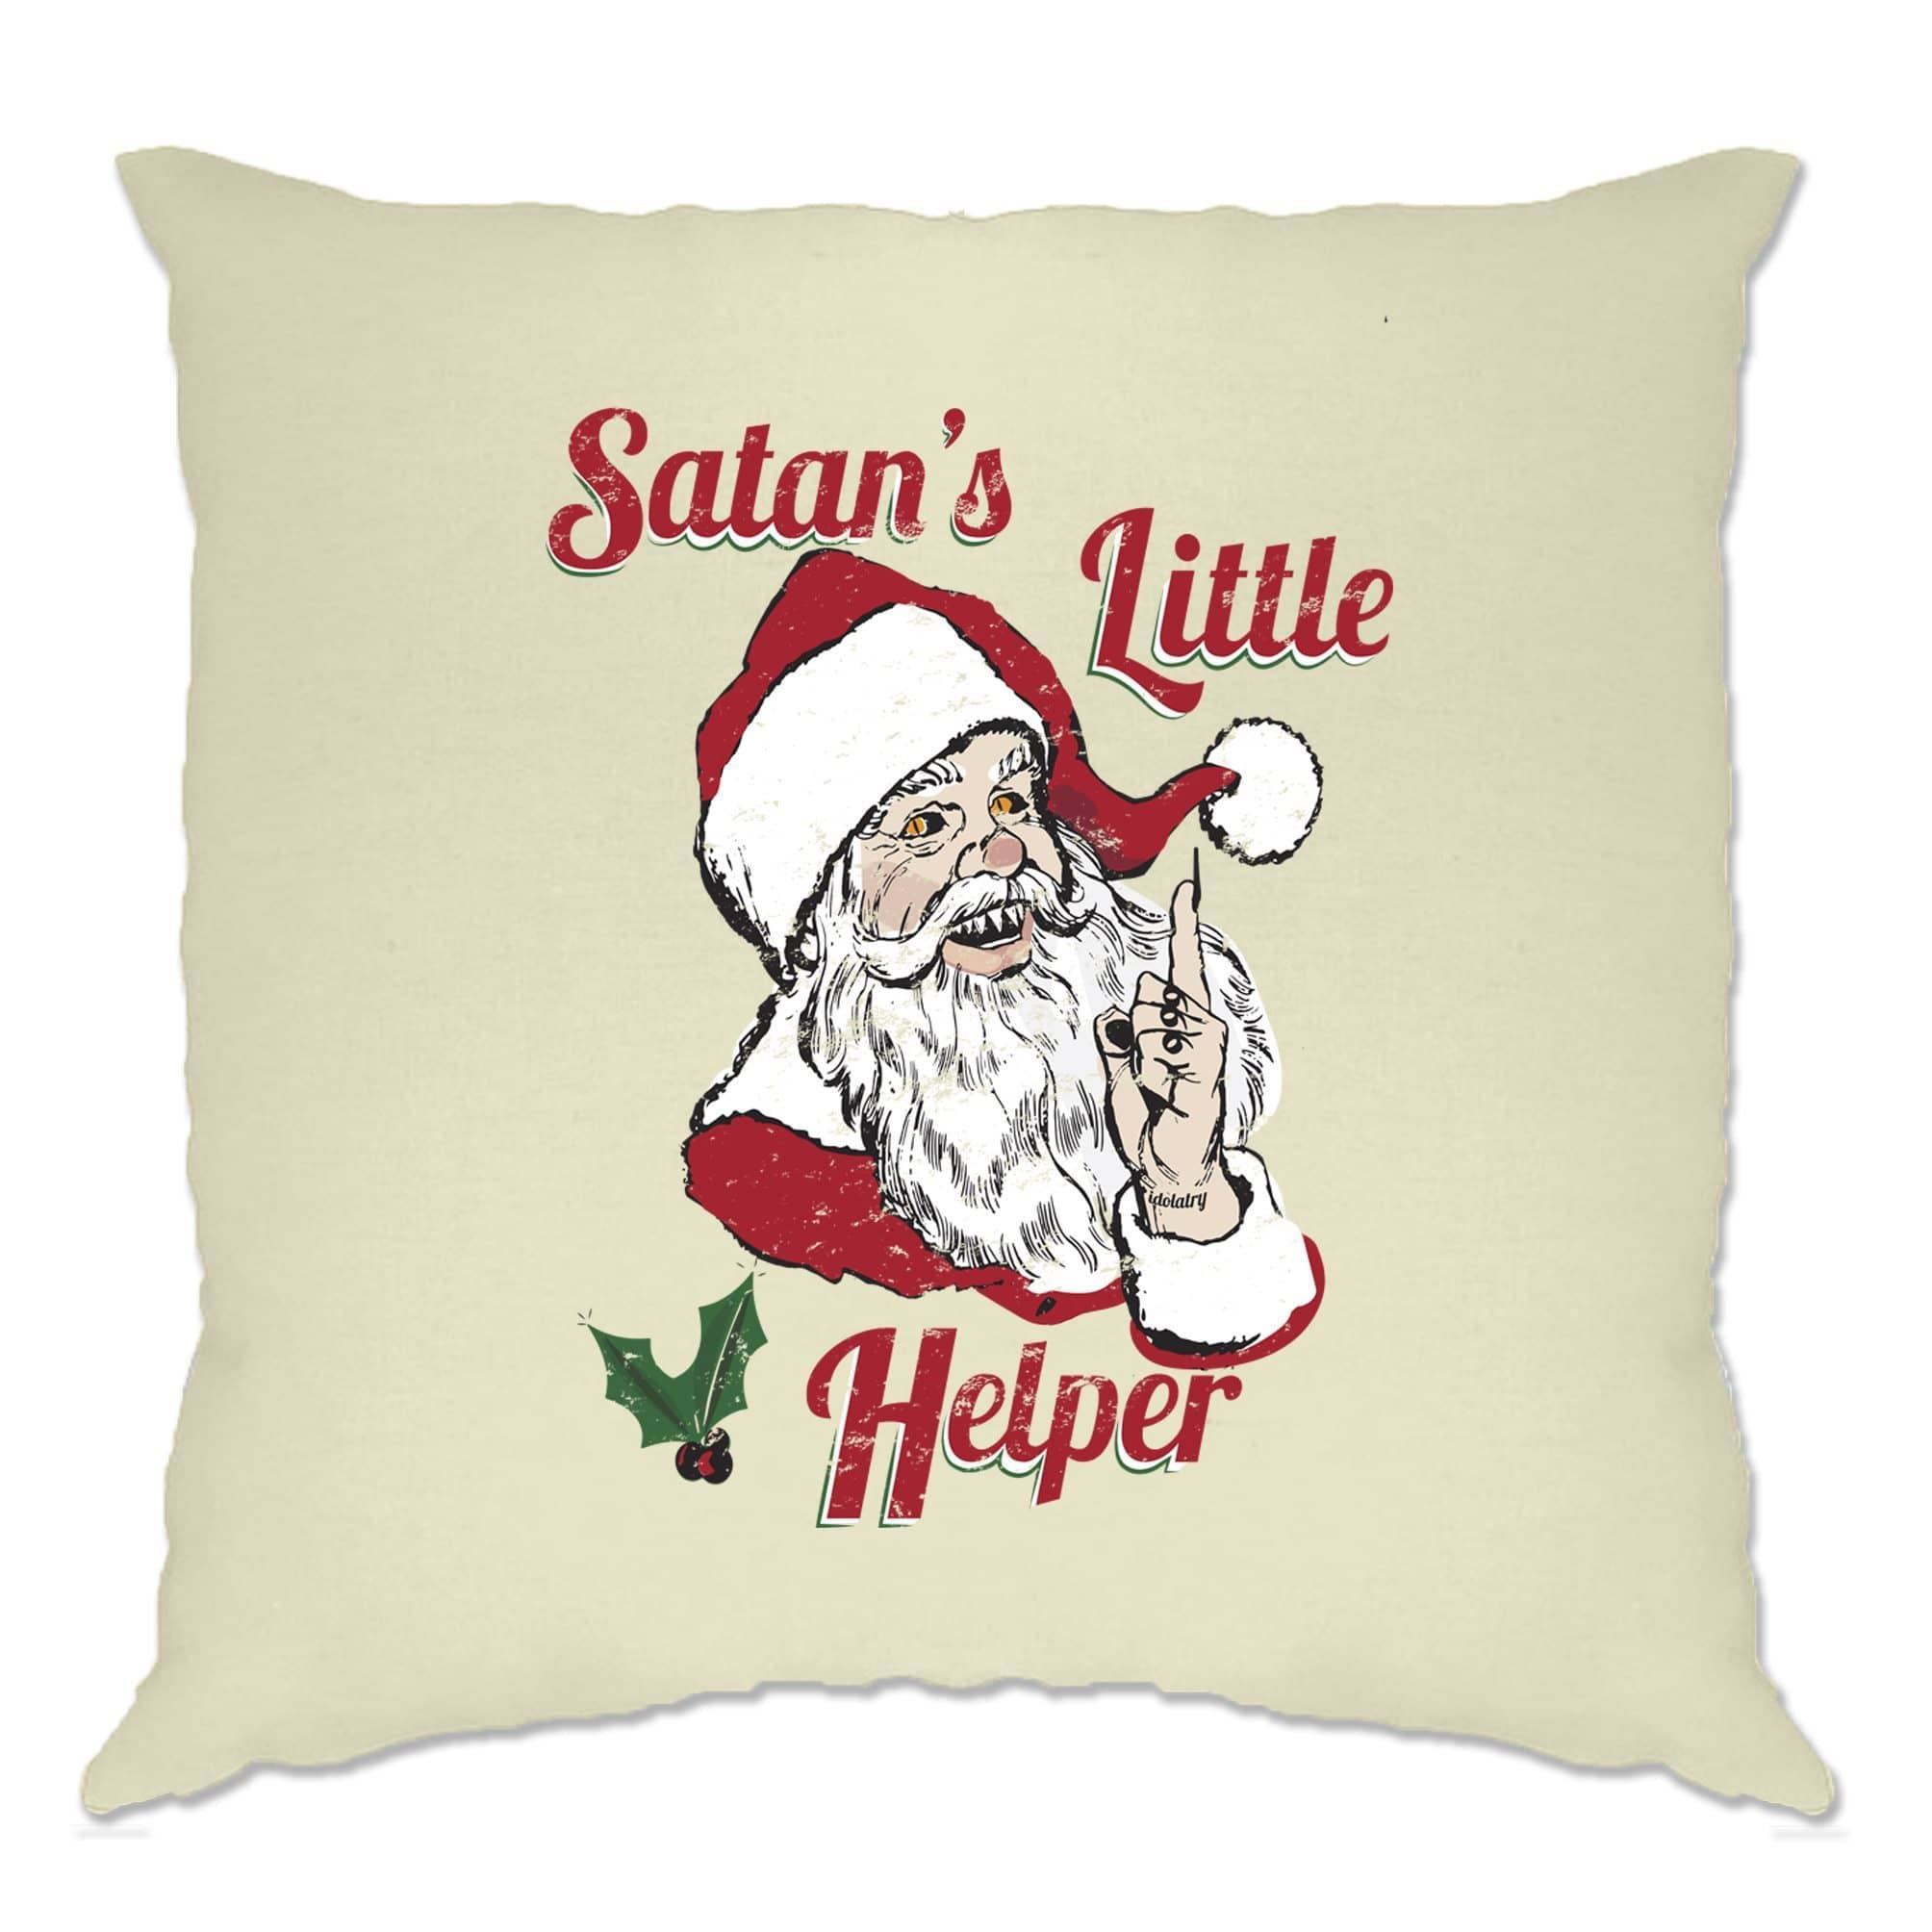 Anti Christmas Cushion Cover Satans Little Helper Parody